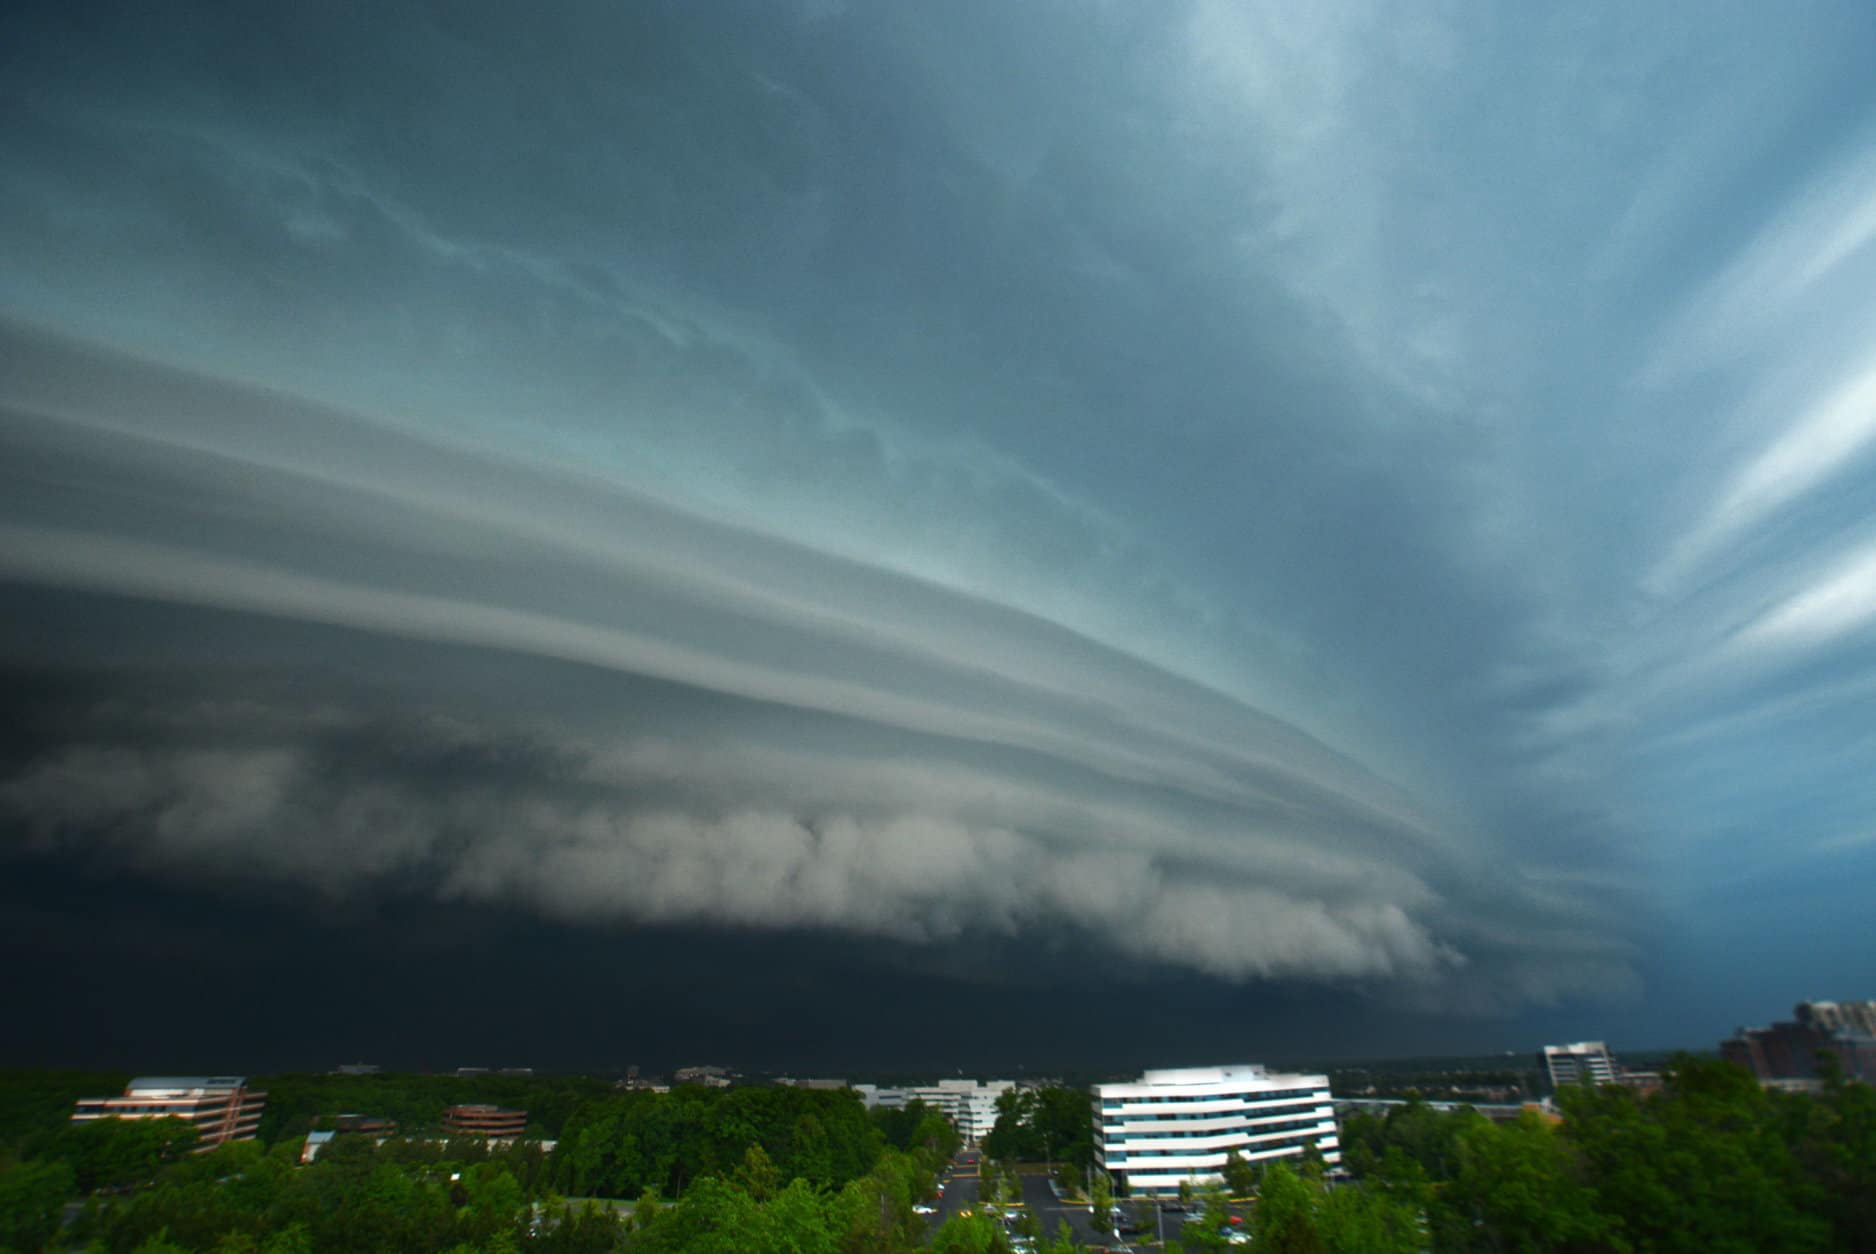 The stormy conditions culminated on Monday afternoon as a giant squall line swept across the region. An ominous shelf cloud and gusty winds raced across the western suburbs. Trees were toppled and heavy rain and wind-driven hail pelted drivers during the afternoon rush hour. (WTOP/Dave Dildine)